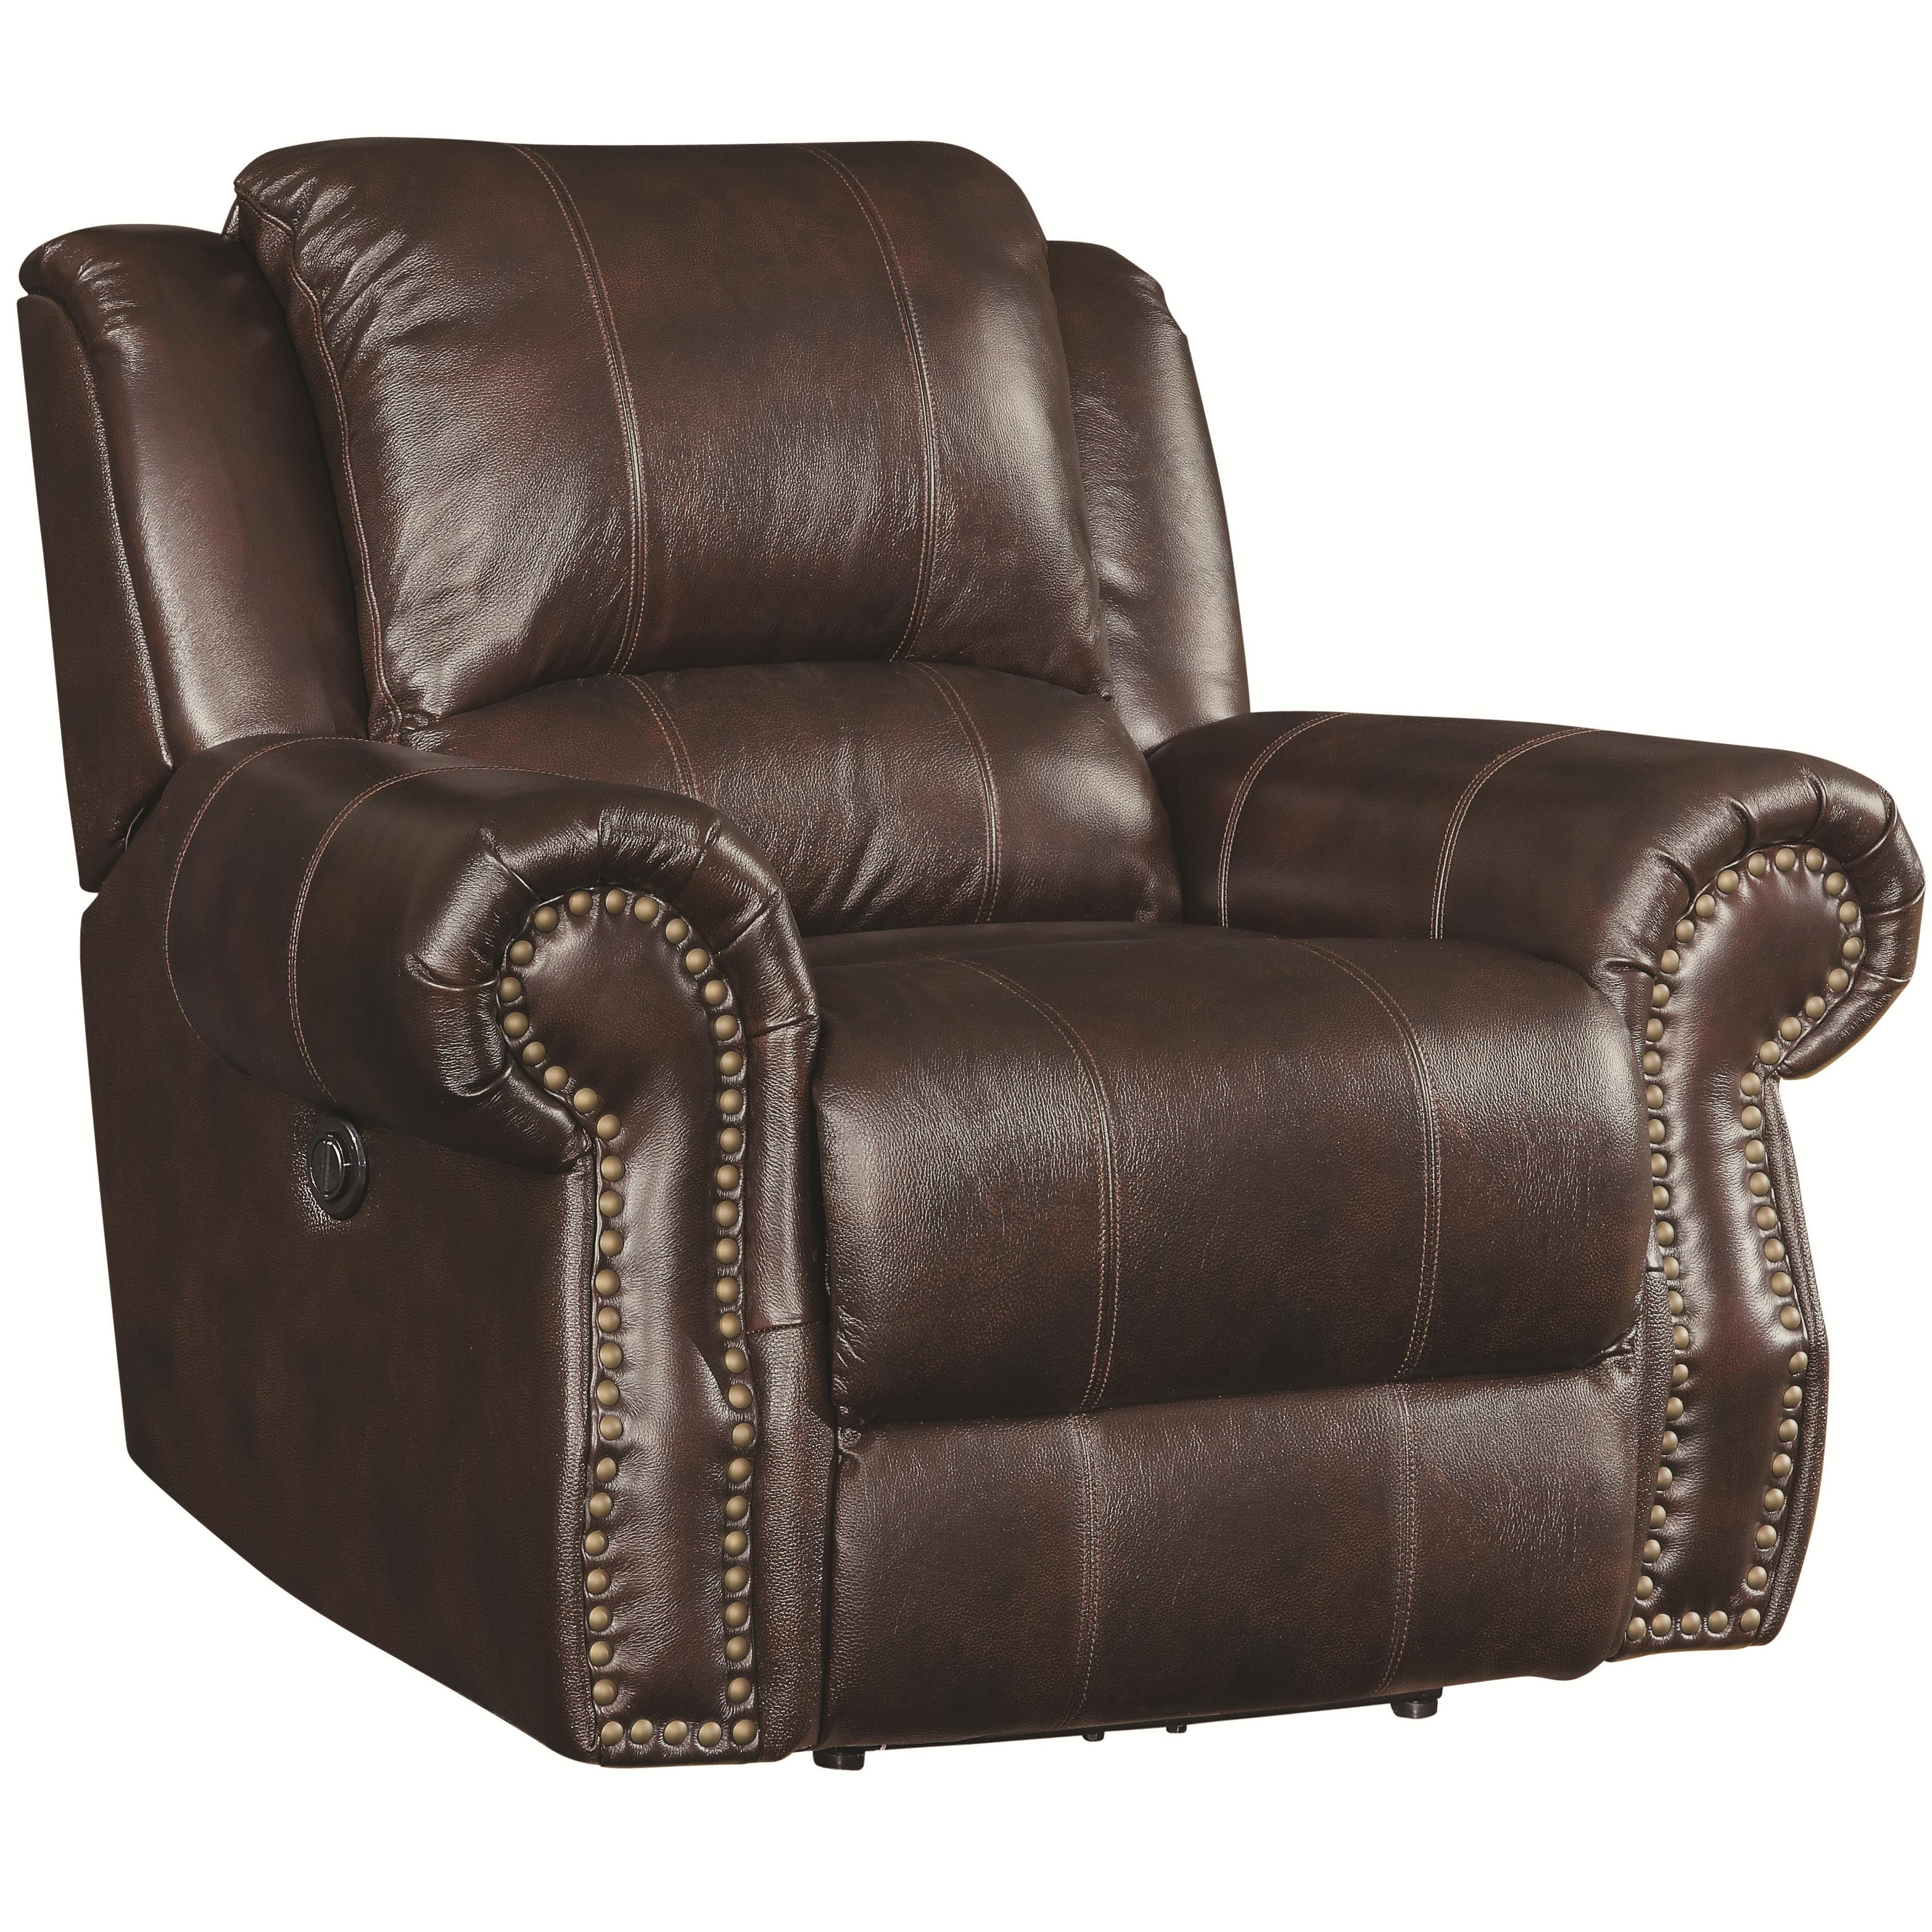 Value City Furniture Living Room Sets >> Coaster Sir Rawlinson Traditional Swivel Rocker Recliner with Nailhead Studs | Value City ...